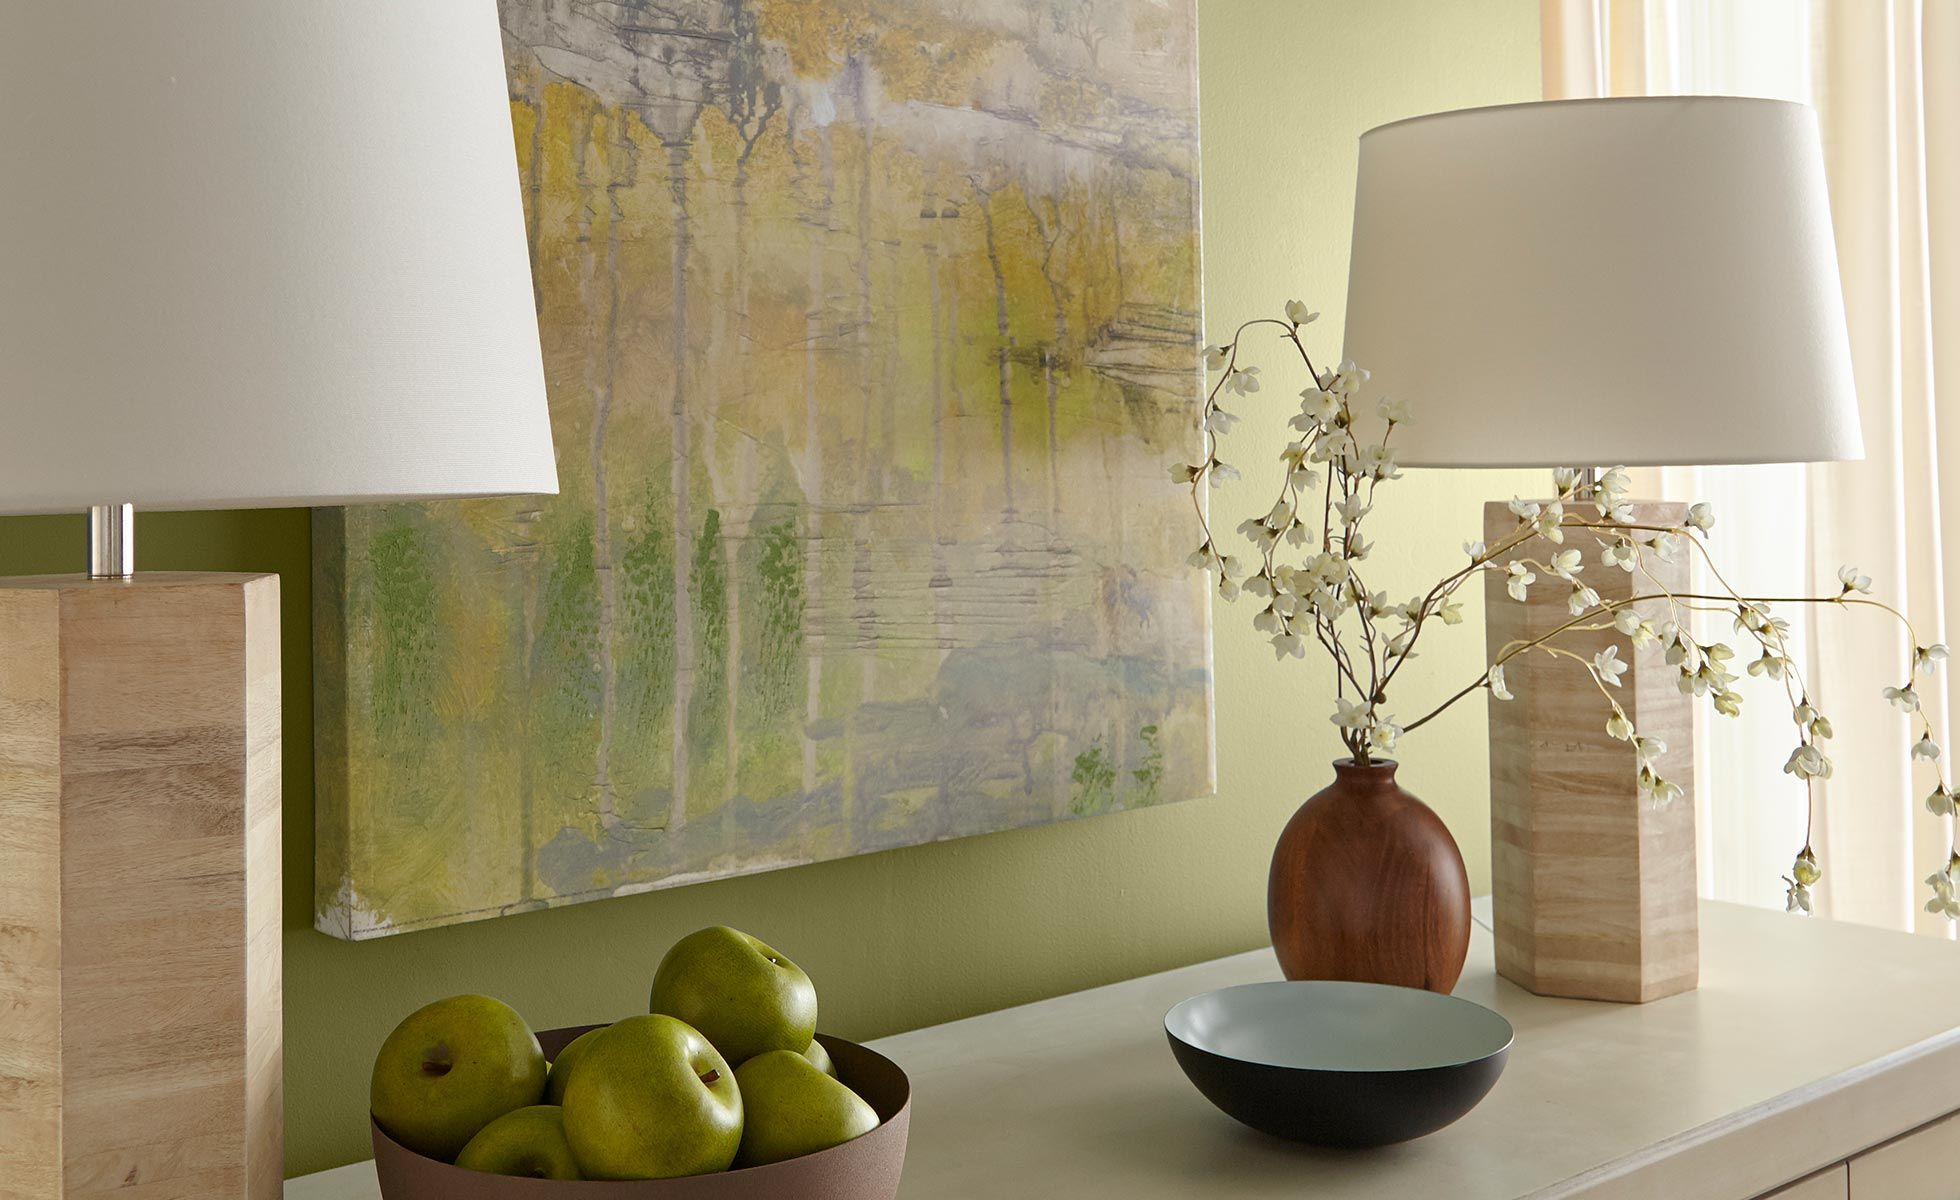 Behr's color of the year for 2020 is Back to Nature